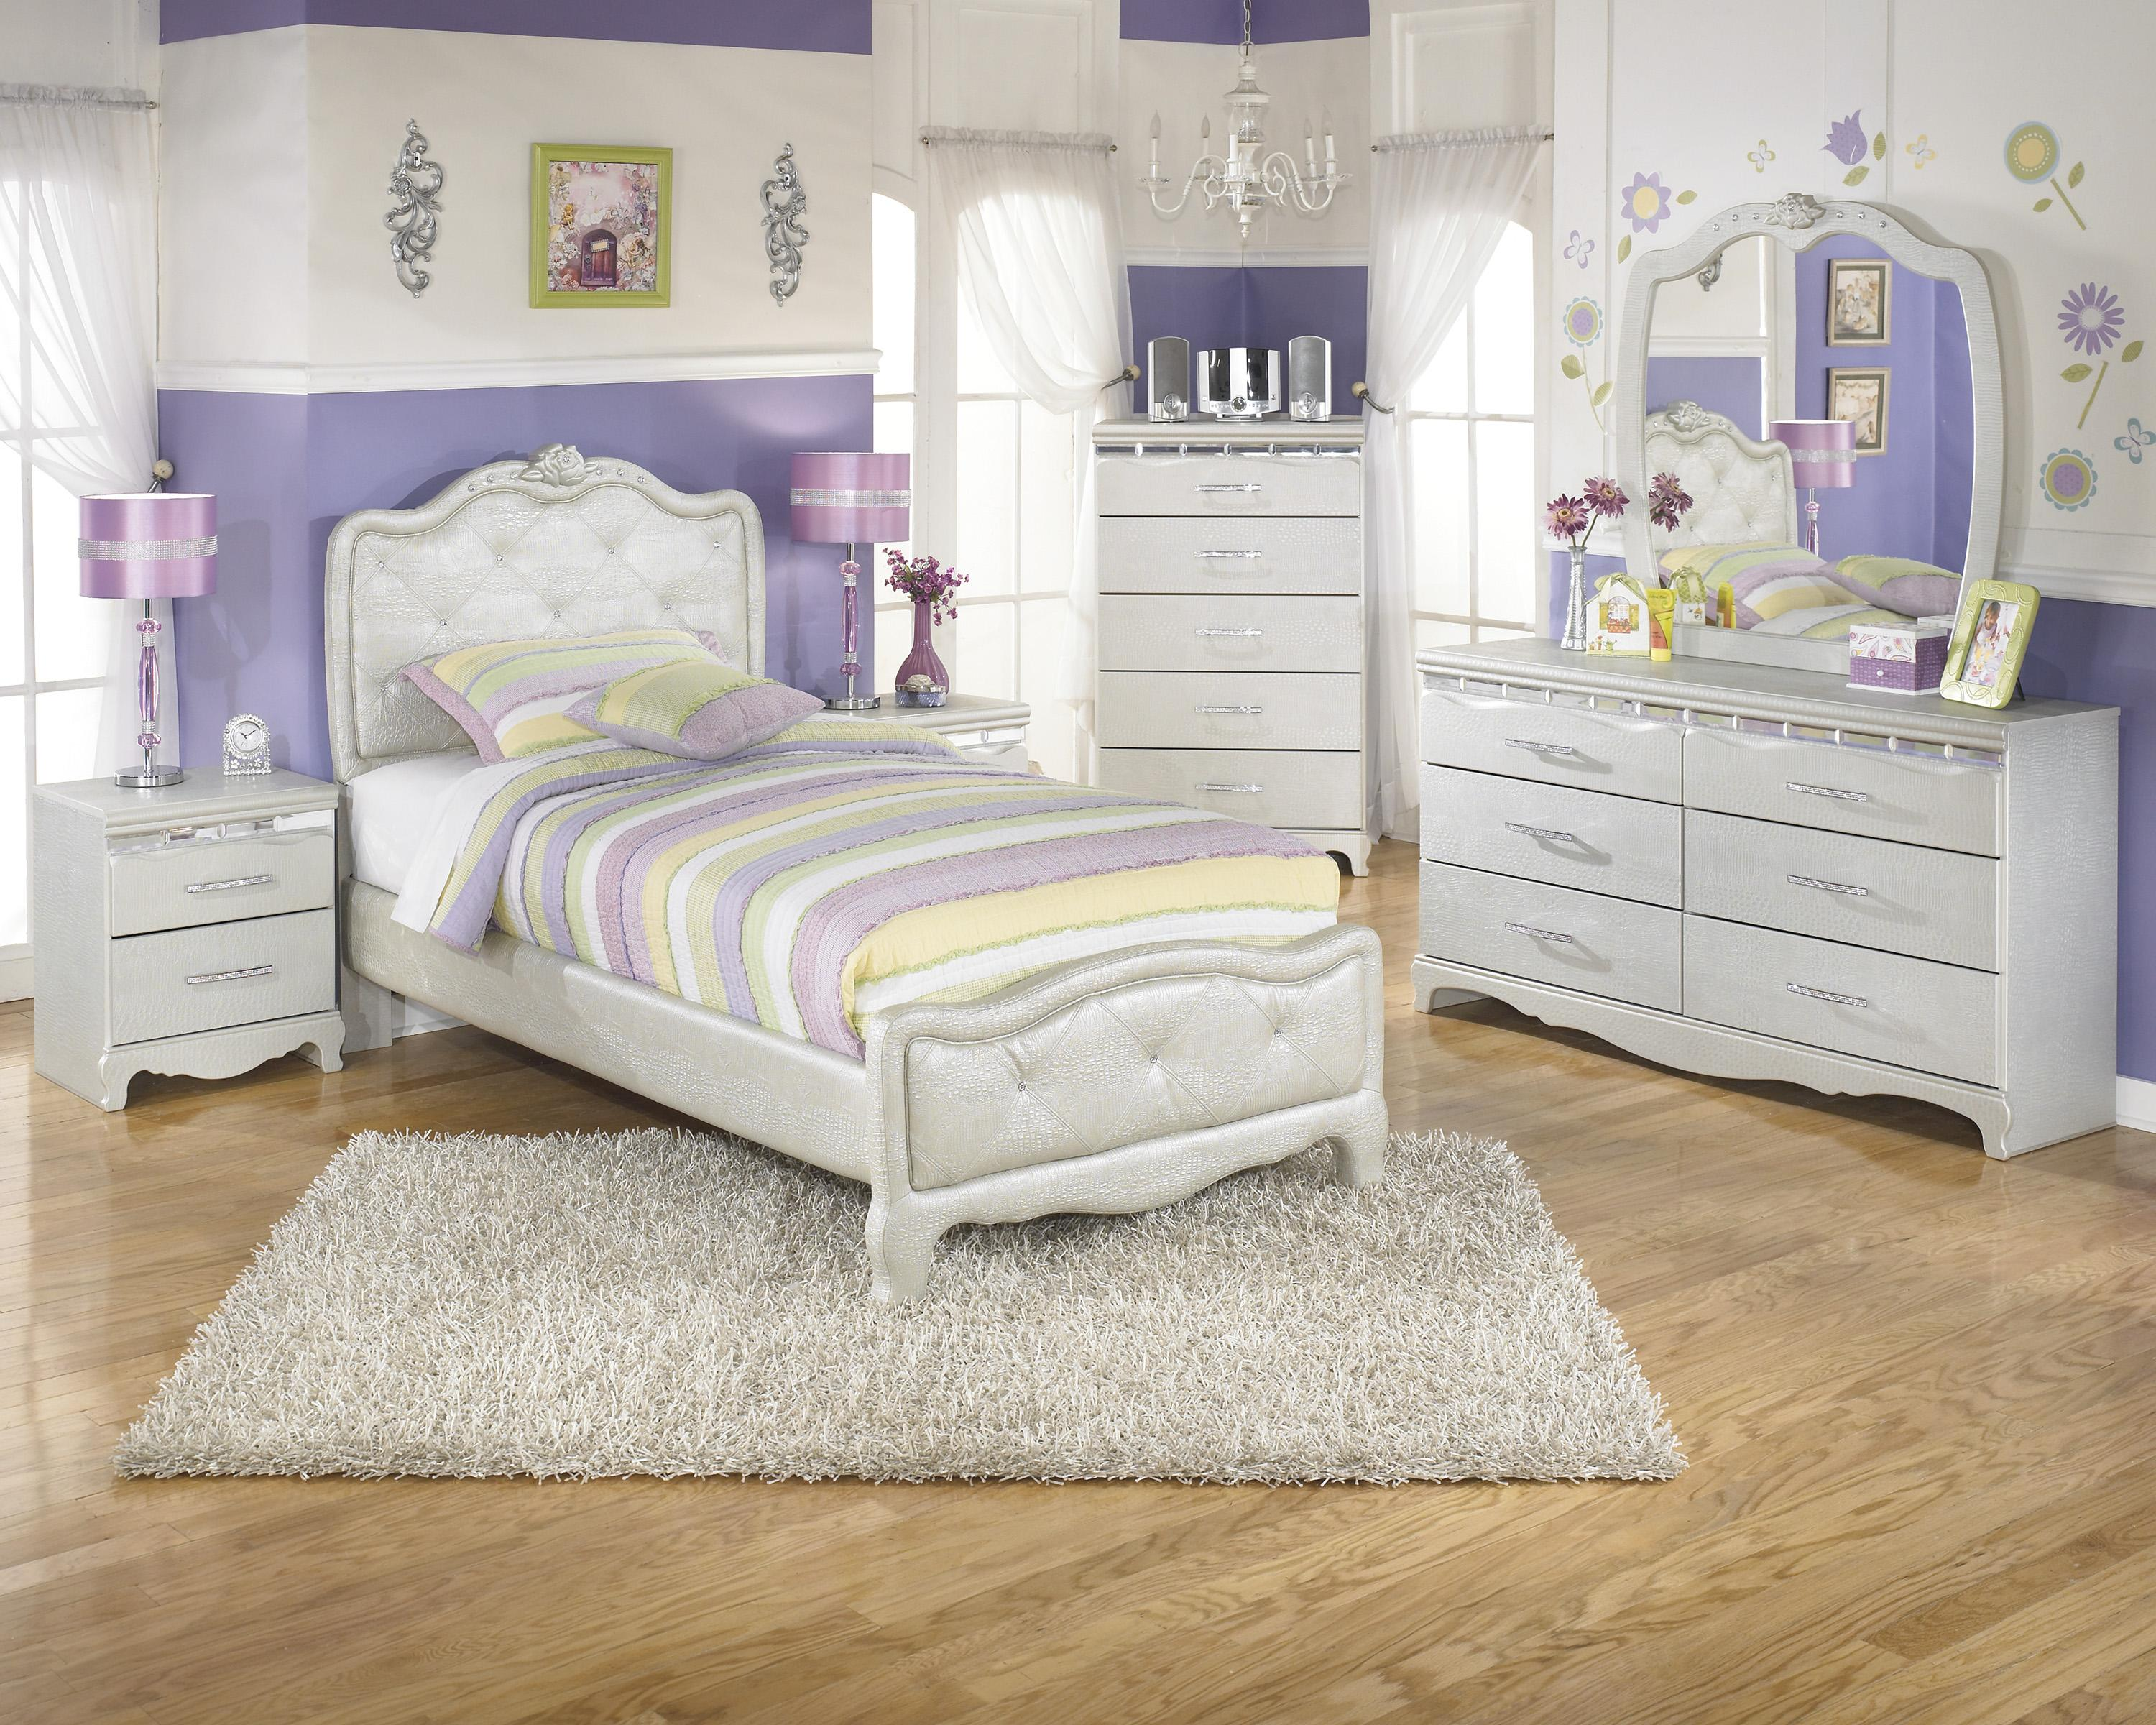 Signature Design by Ashley Zarollina Twin Bedroom Group - Item Number: B182 T Bedroom Group 1